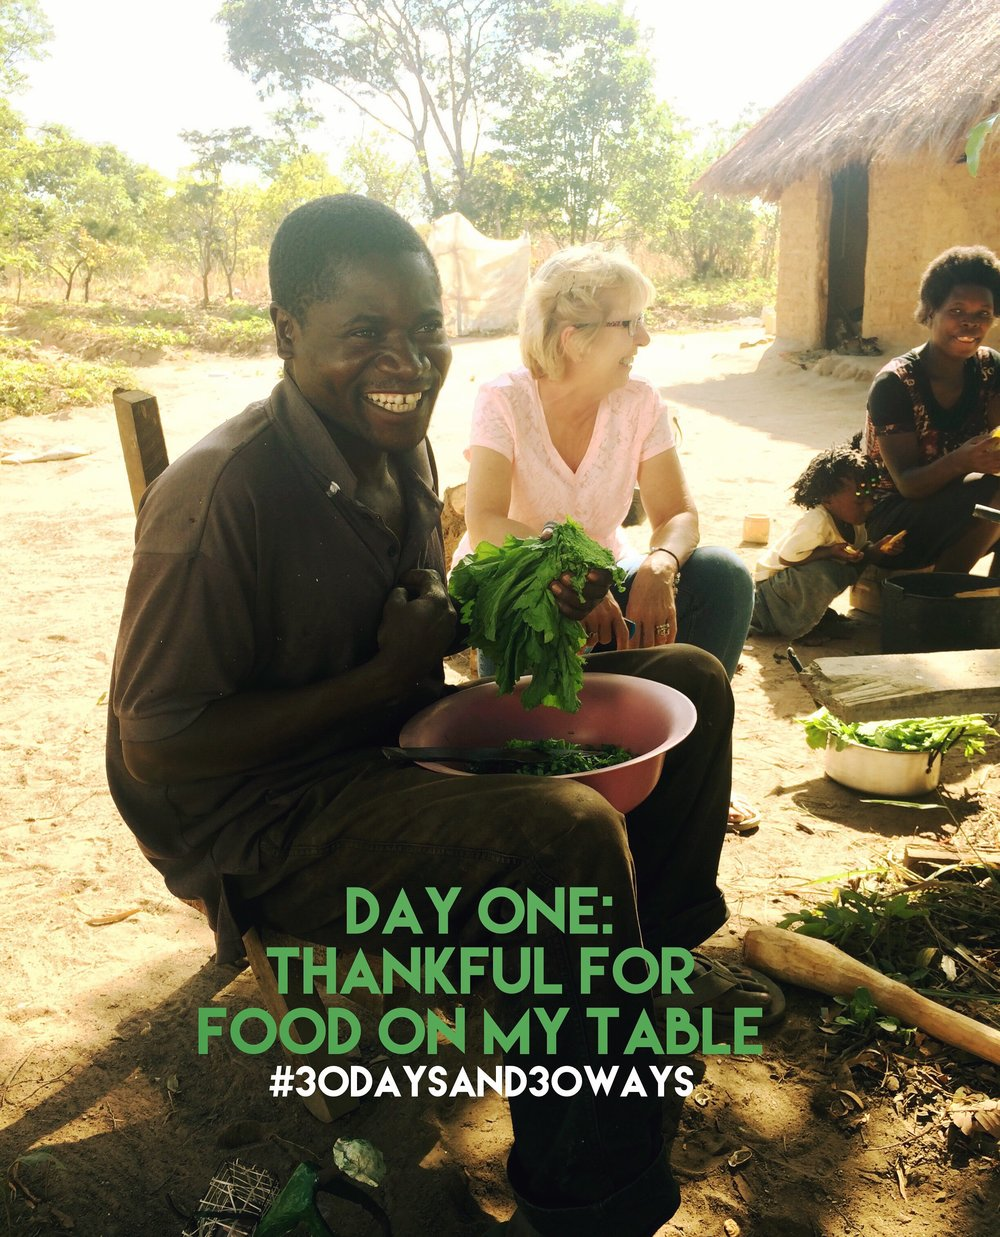 Day One:   we're thankful for food on our table so we're inspiring you to give food to Life Okendewa   in our $8 monthly Nutrition Package (or one time donation if $100 to feed one kid for one year)!!!